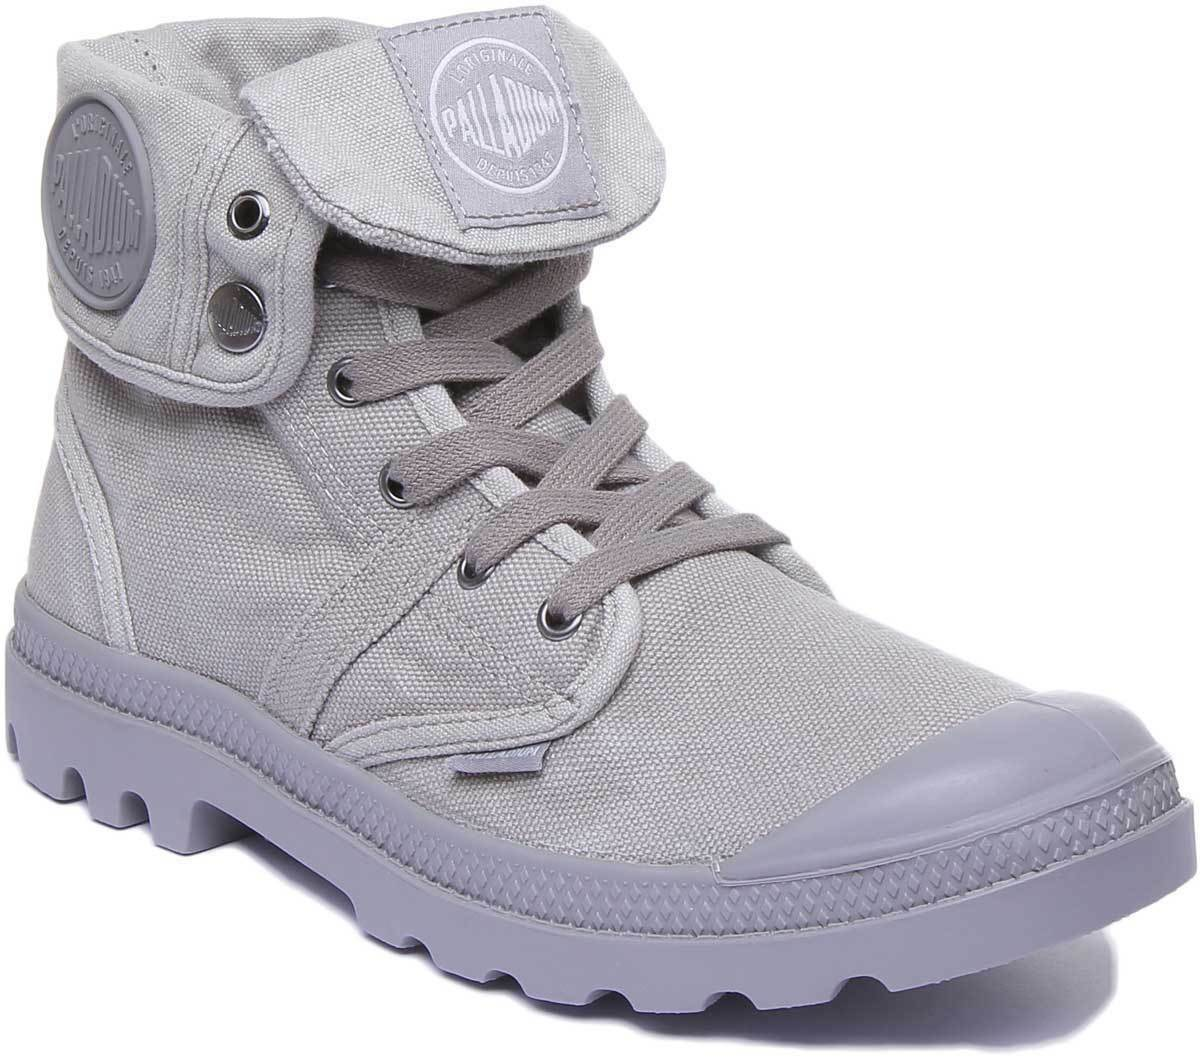 Palladium Pallabrouse Baggy Men Washed Canvas Grey Hi Top Boots UK Size 6 - 12